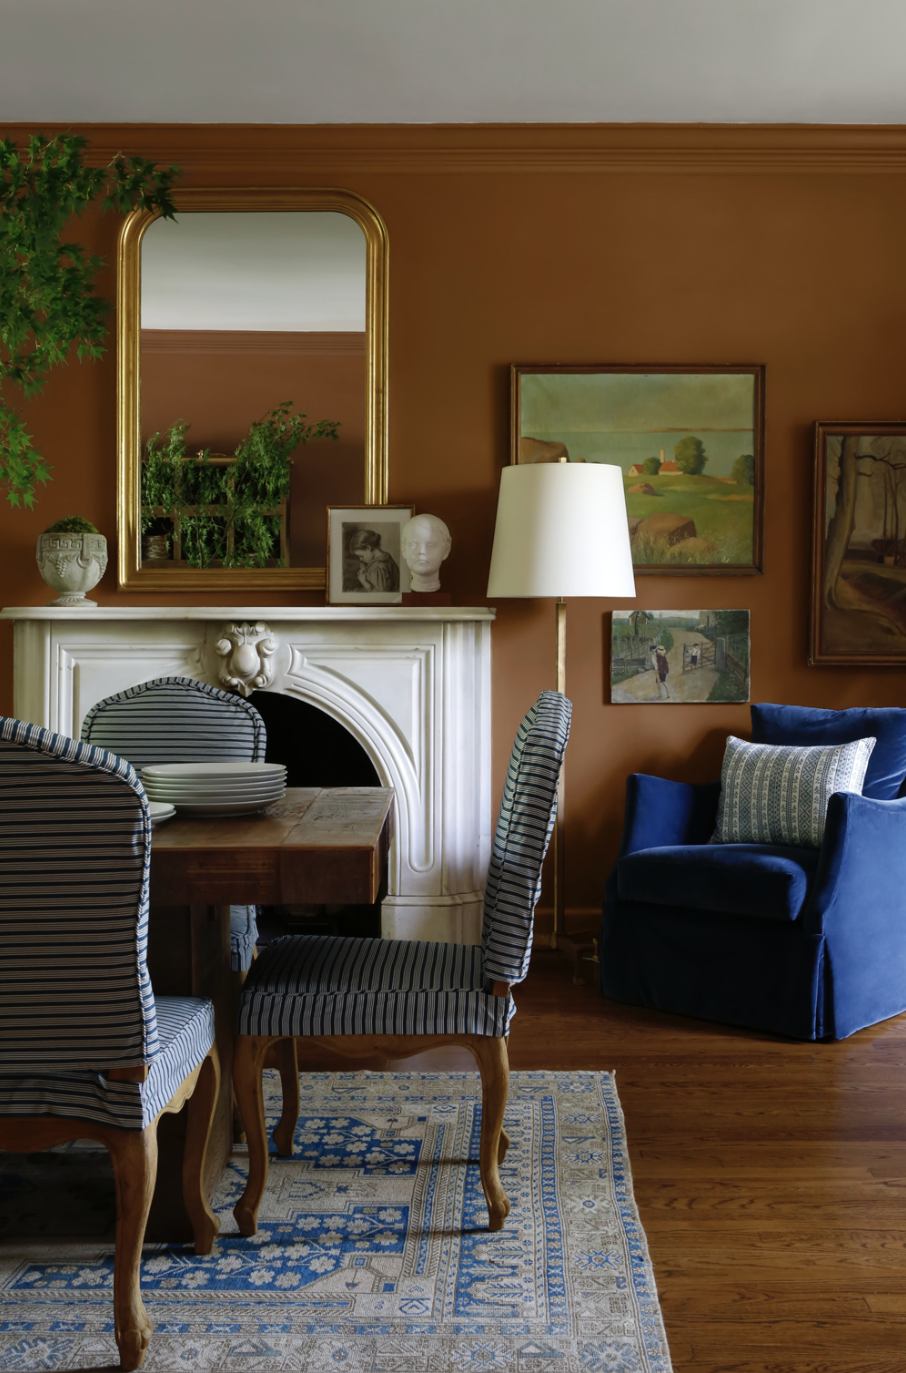 We Can't Get Enough of These 13 Paint Color Trends for 2021_8 paint color trends We Can't Get Enough of These 12 Paint Color Trends for 2021 We Can   t Get Enough of These 13 Paint Color Trends for 2021 8